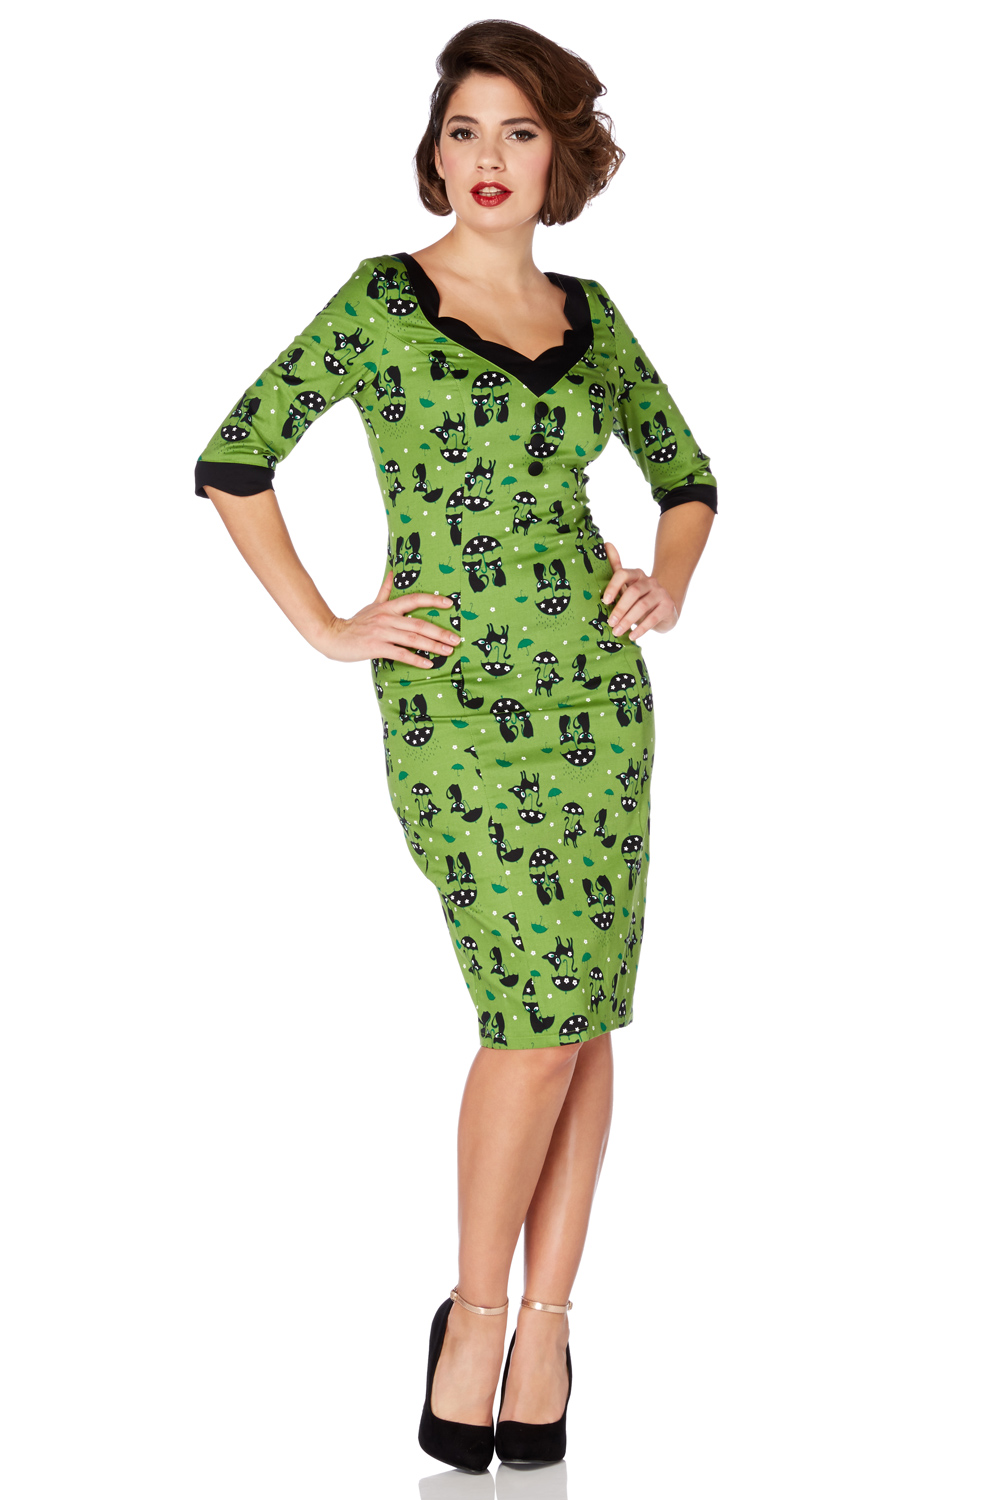 Jade Kat Green Cat in the Rain Wiggle Dress